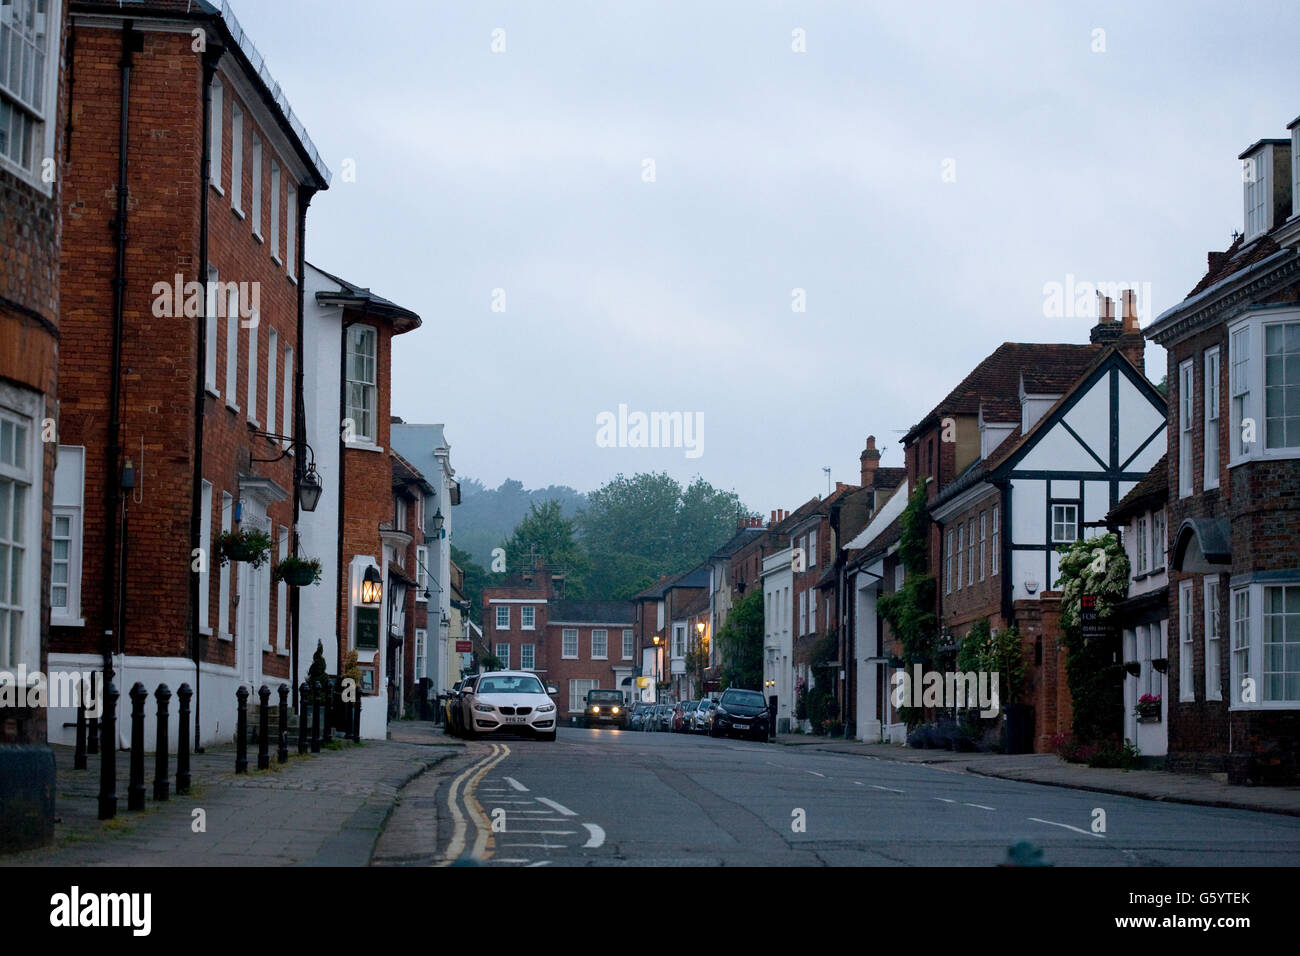 New St, Henley on Thames, early morning - Stock Image